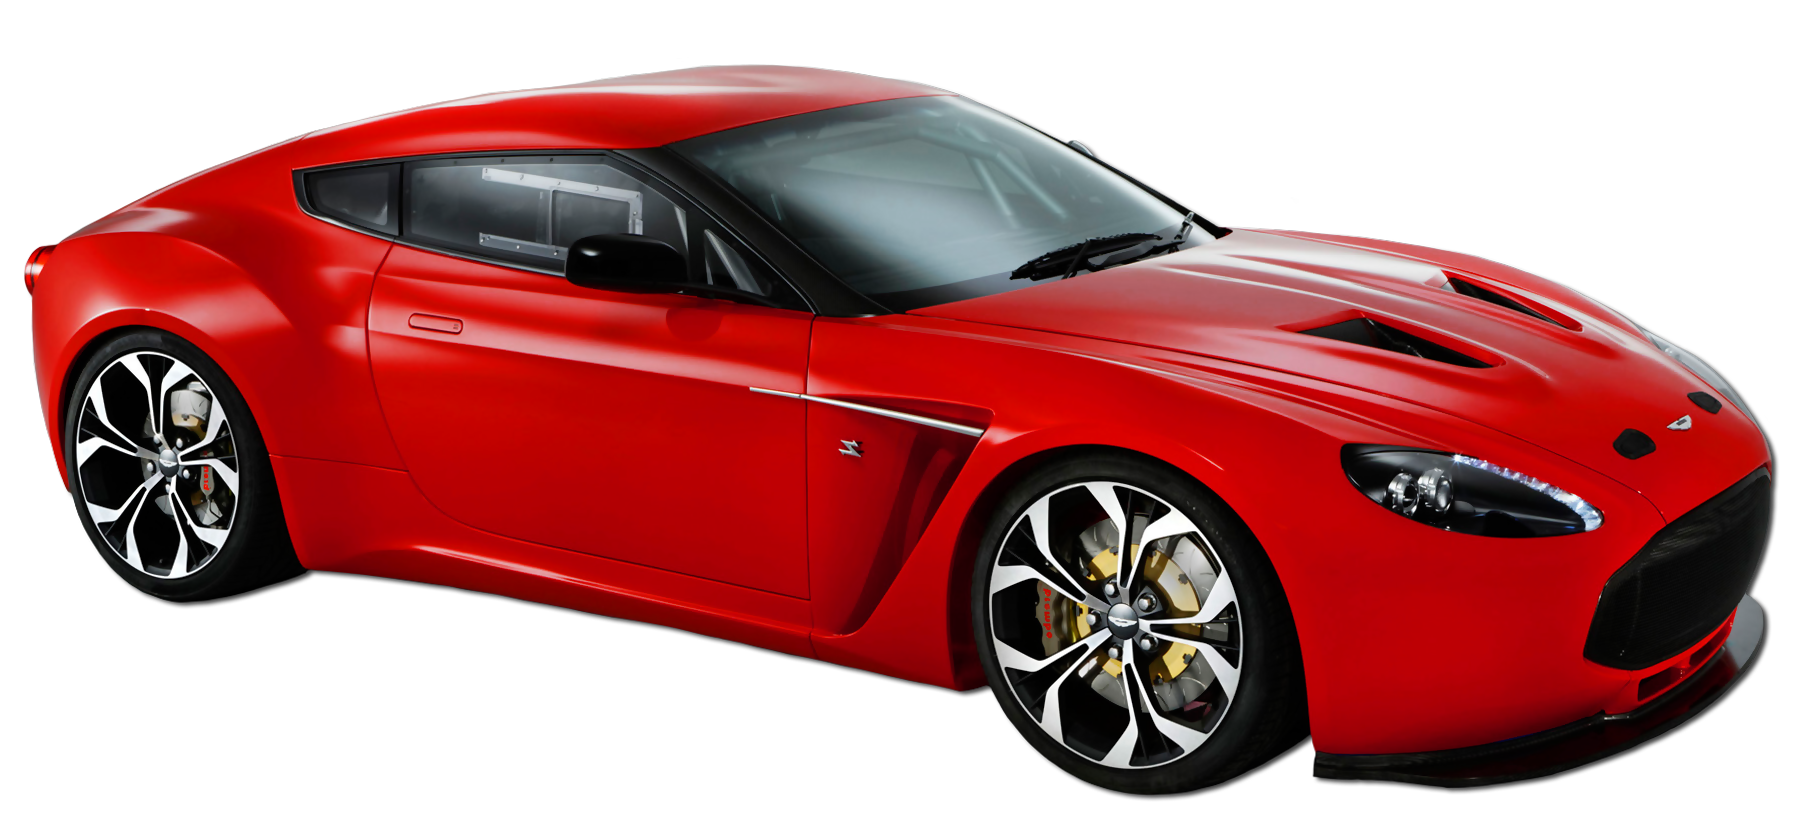 transparent library Cars clipart. Aston martin car png.